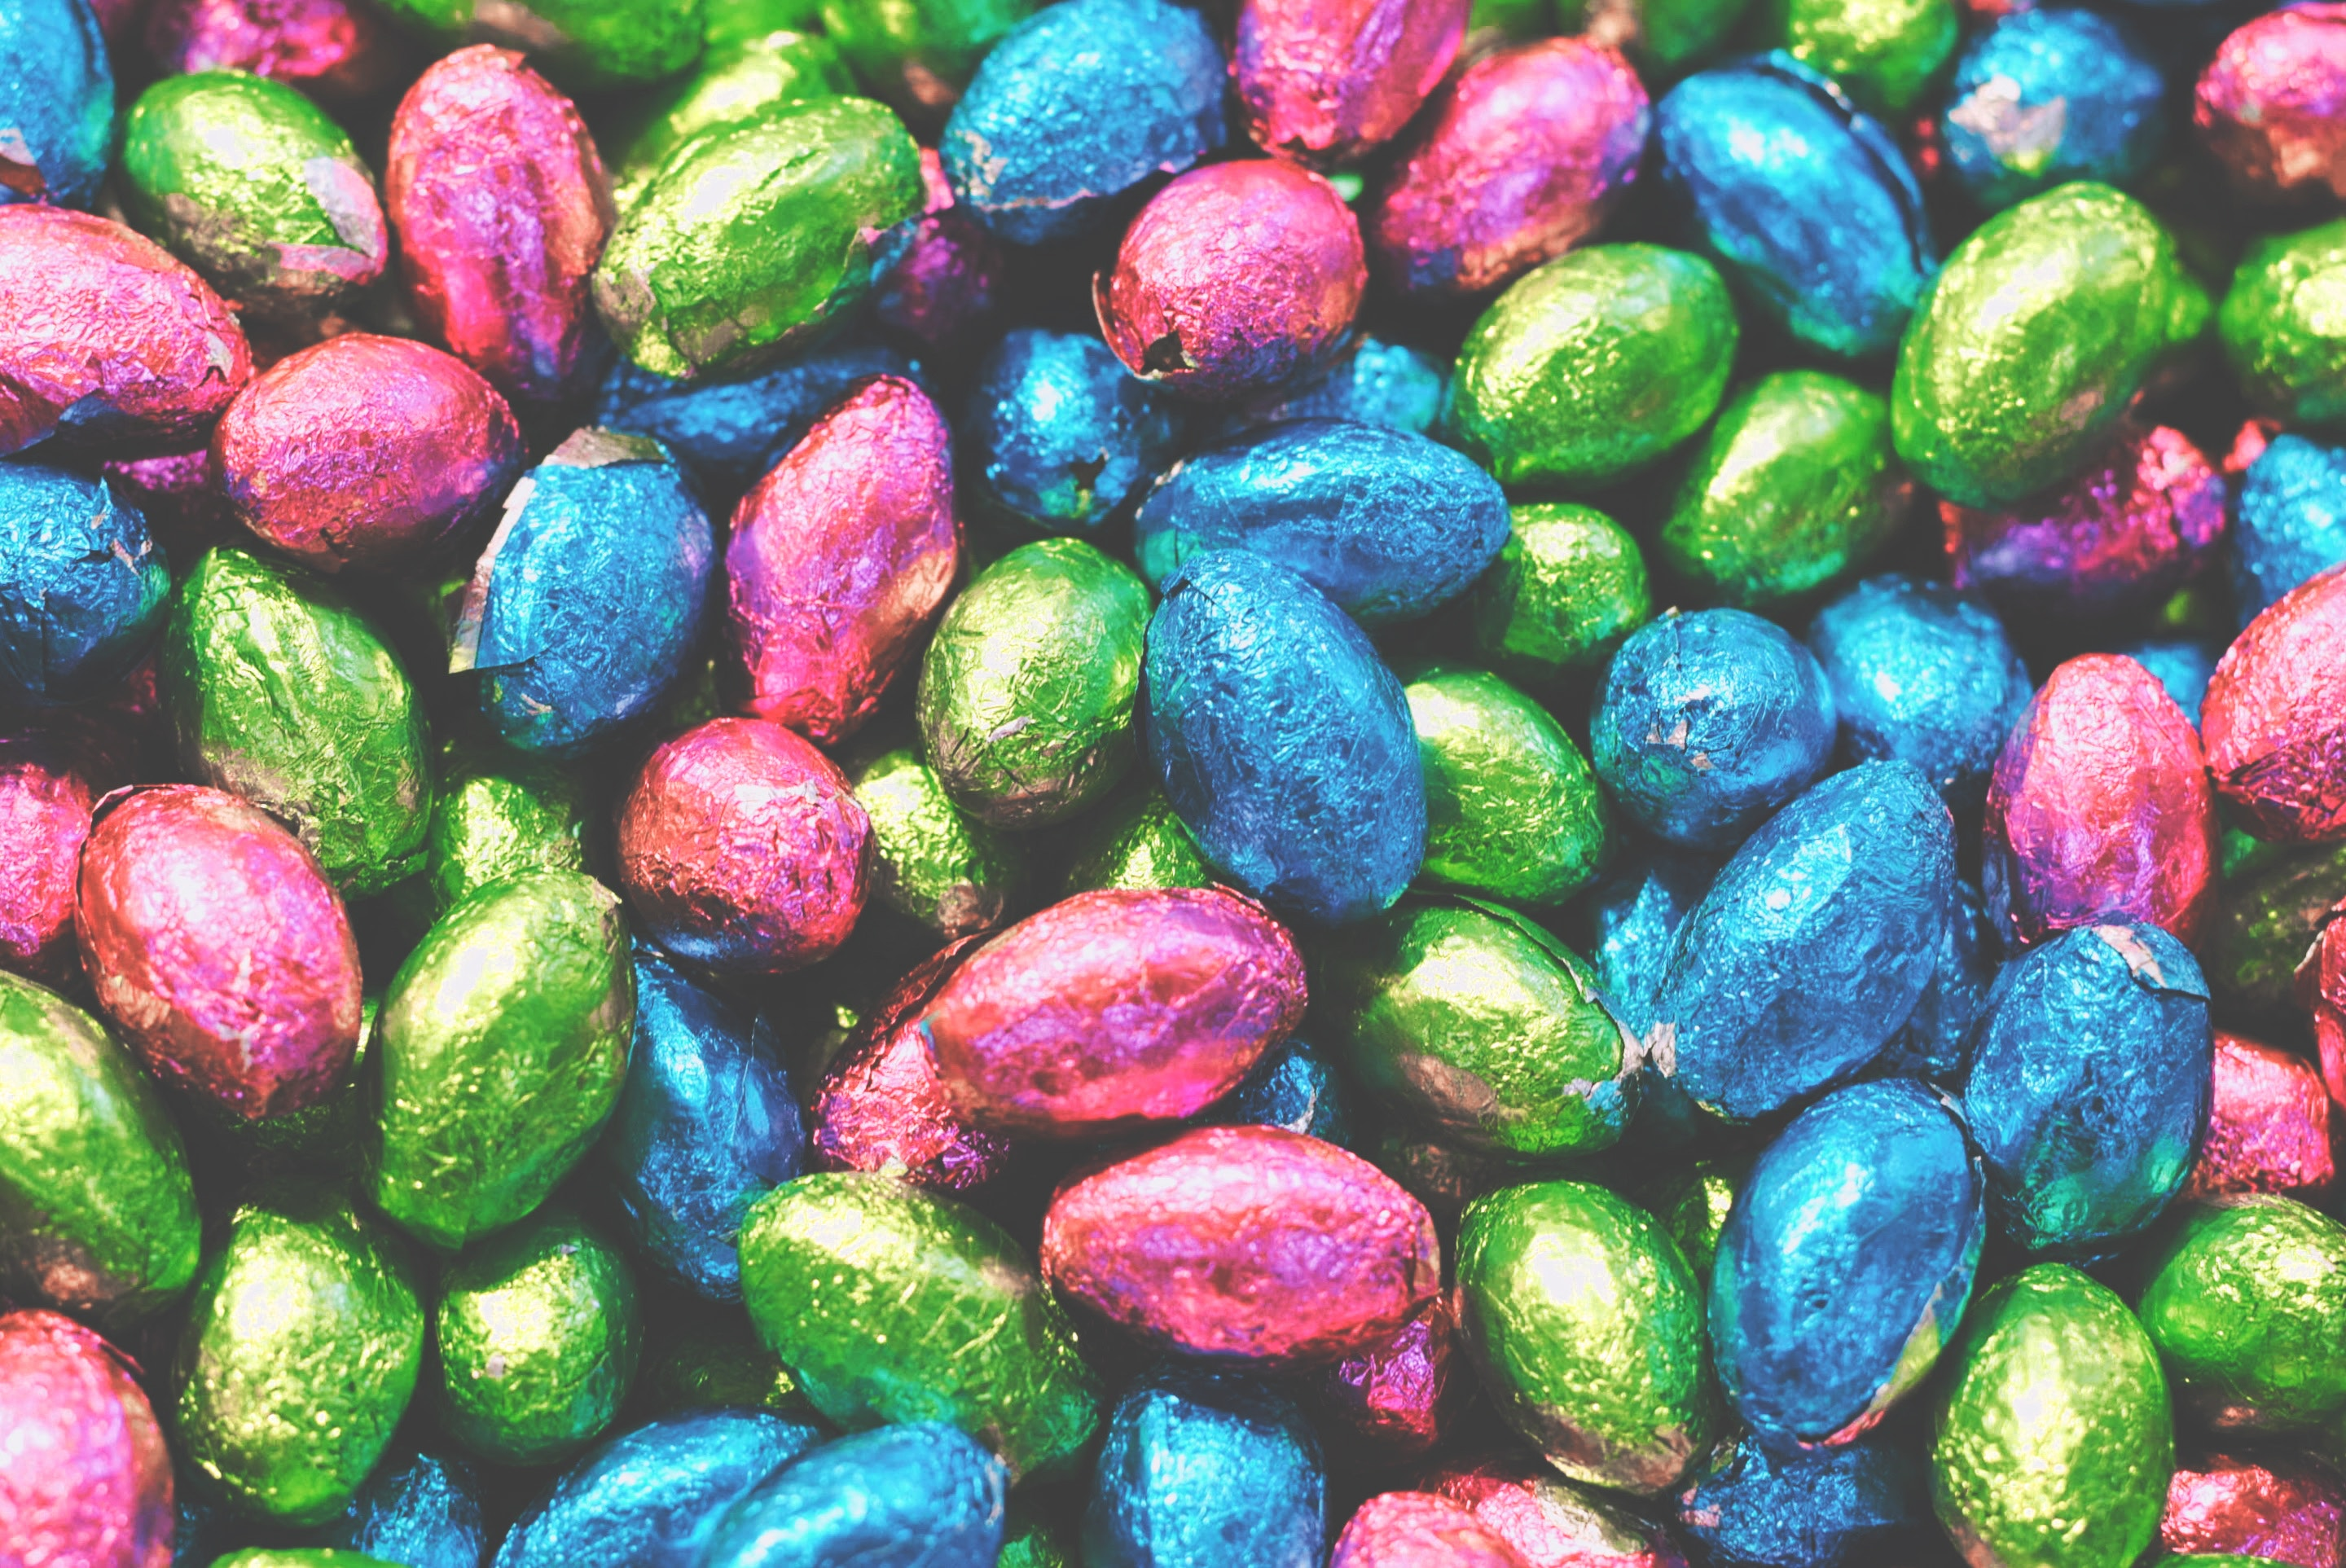 Humanists Prepare For Easter Eggsaggeration Over